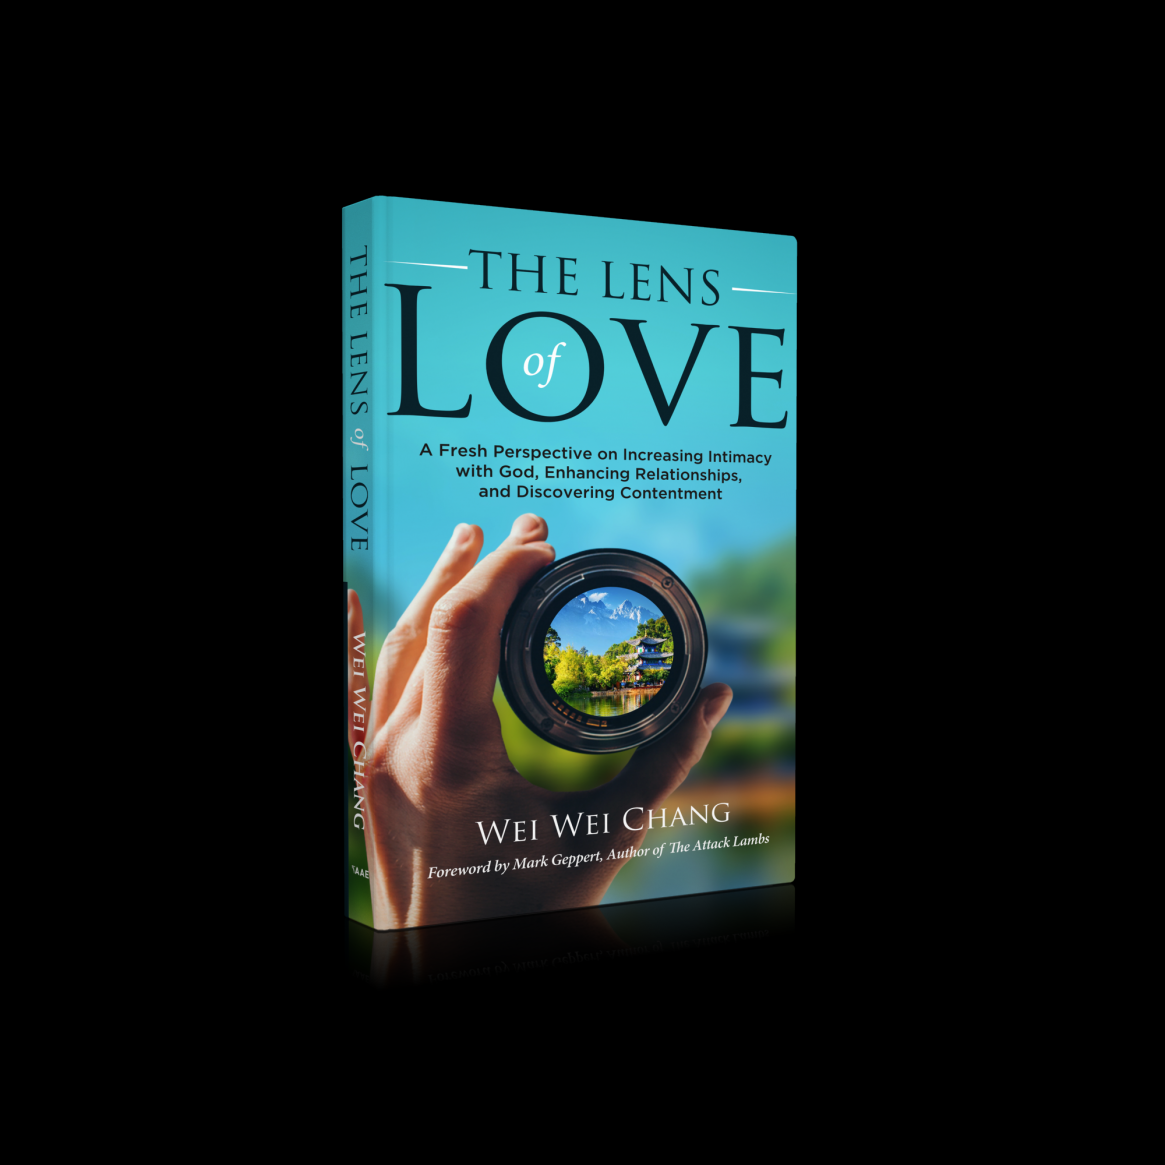 The Lens of Love, available on Amazon